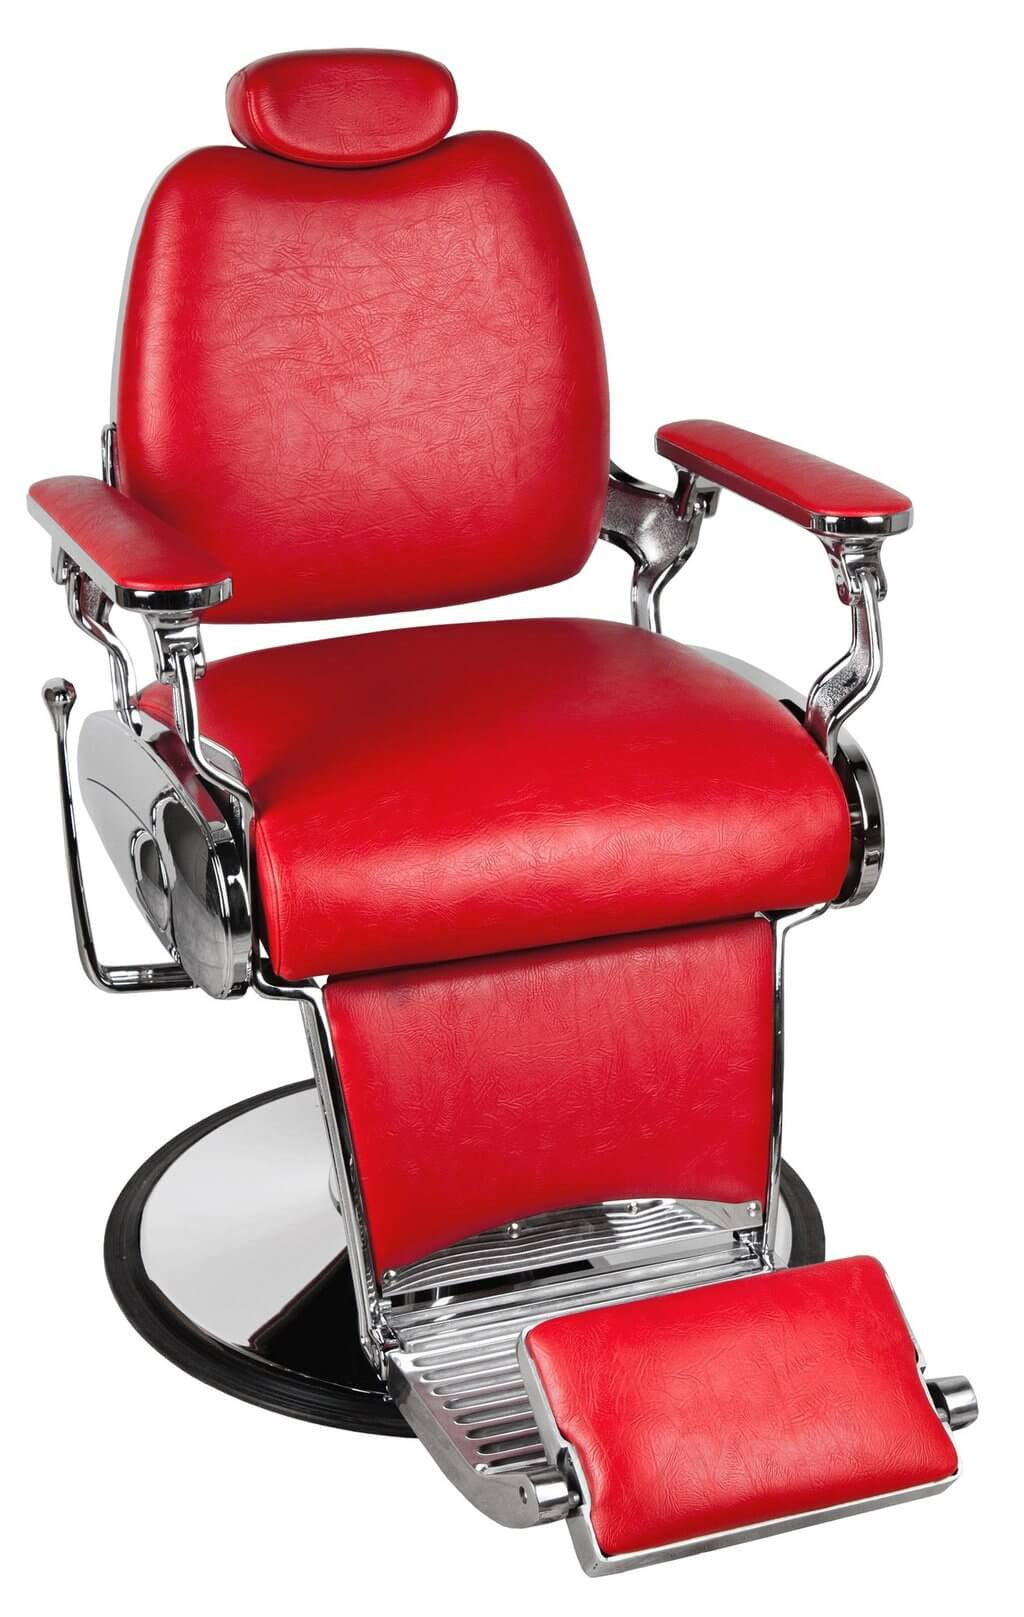 Jaguar Barber chair in Red